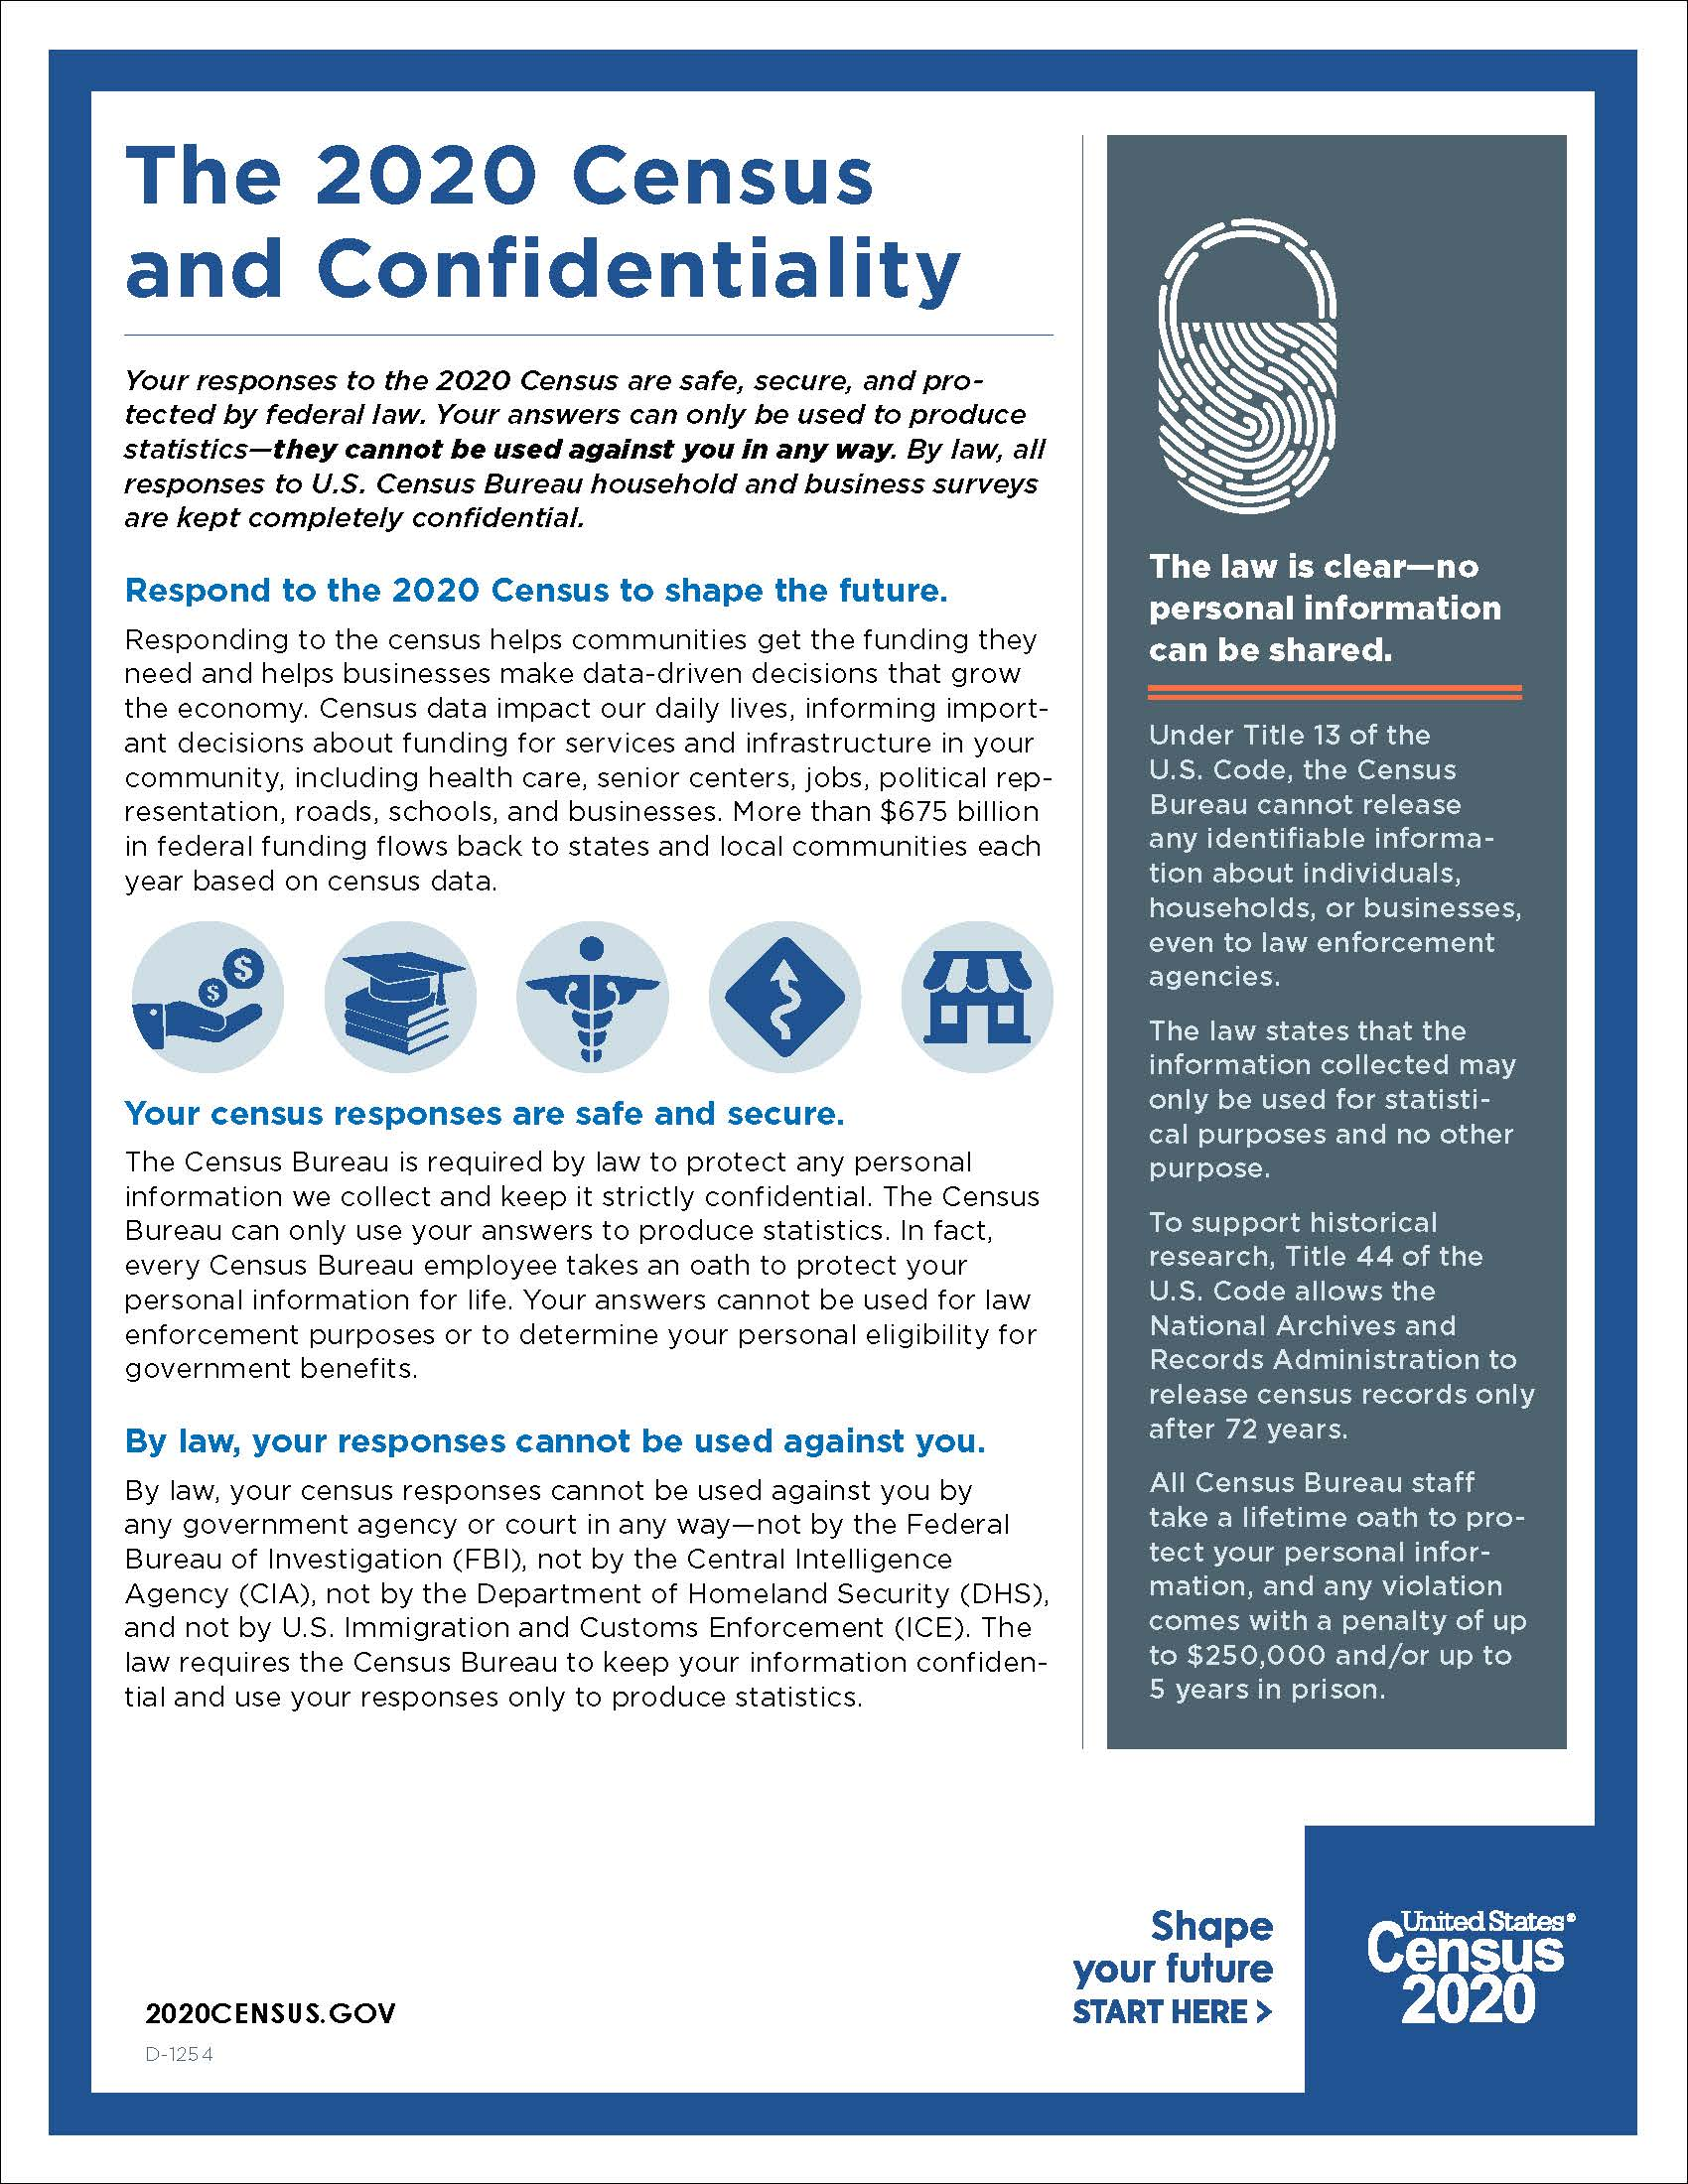 Census 2020-confidentiality-factsheet